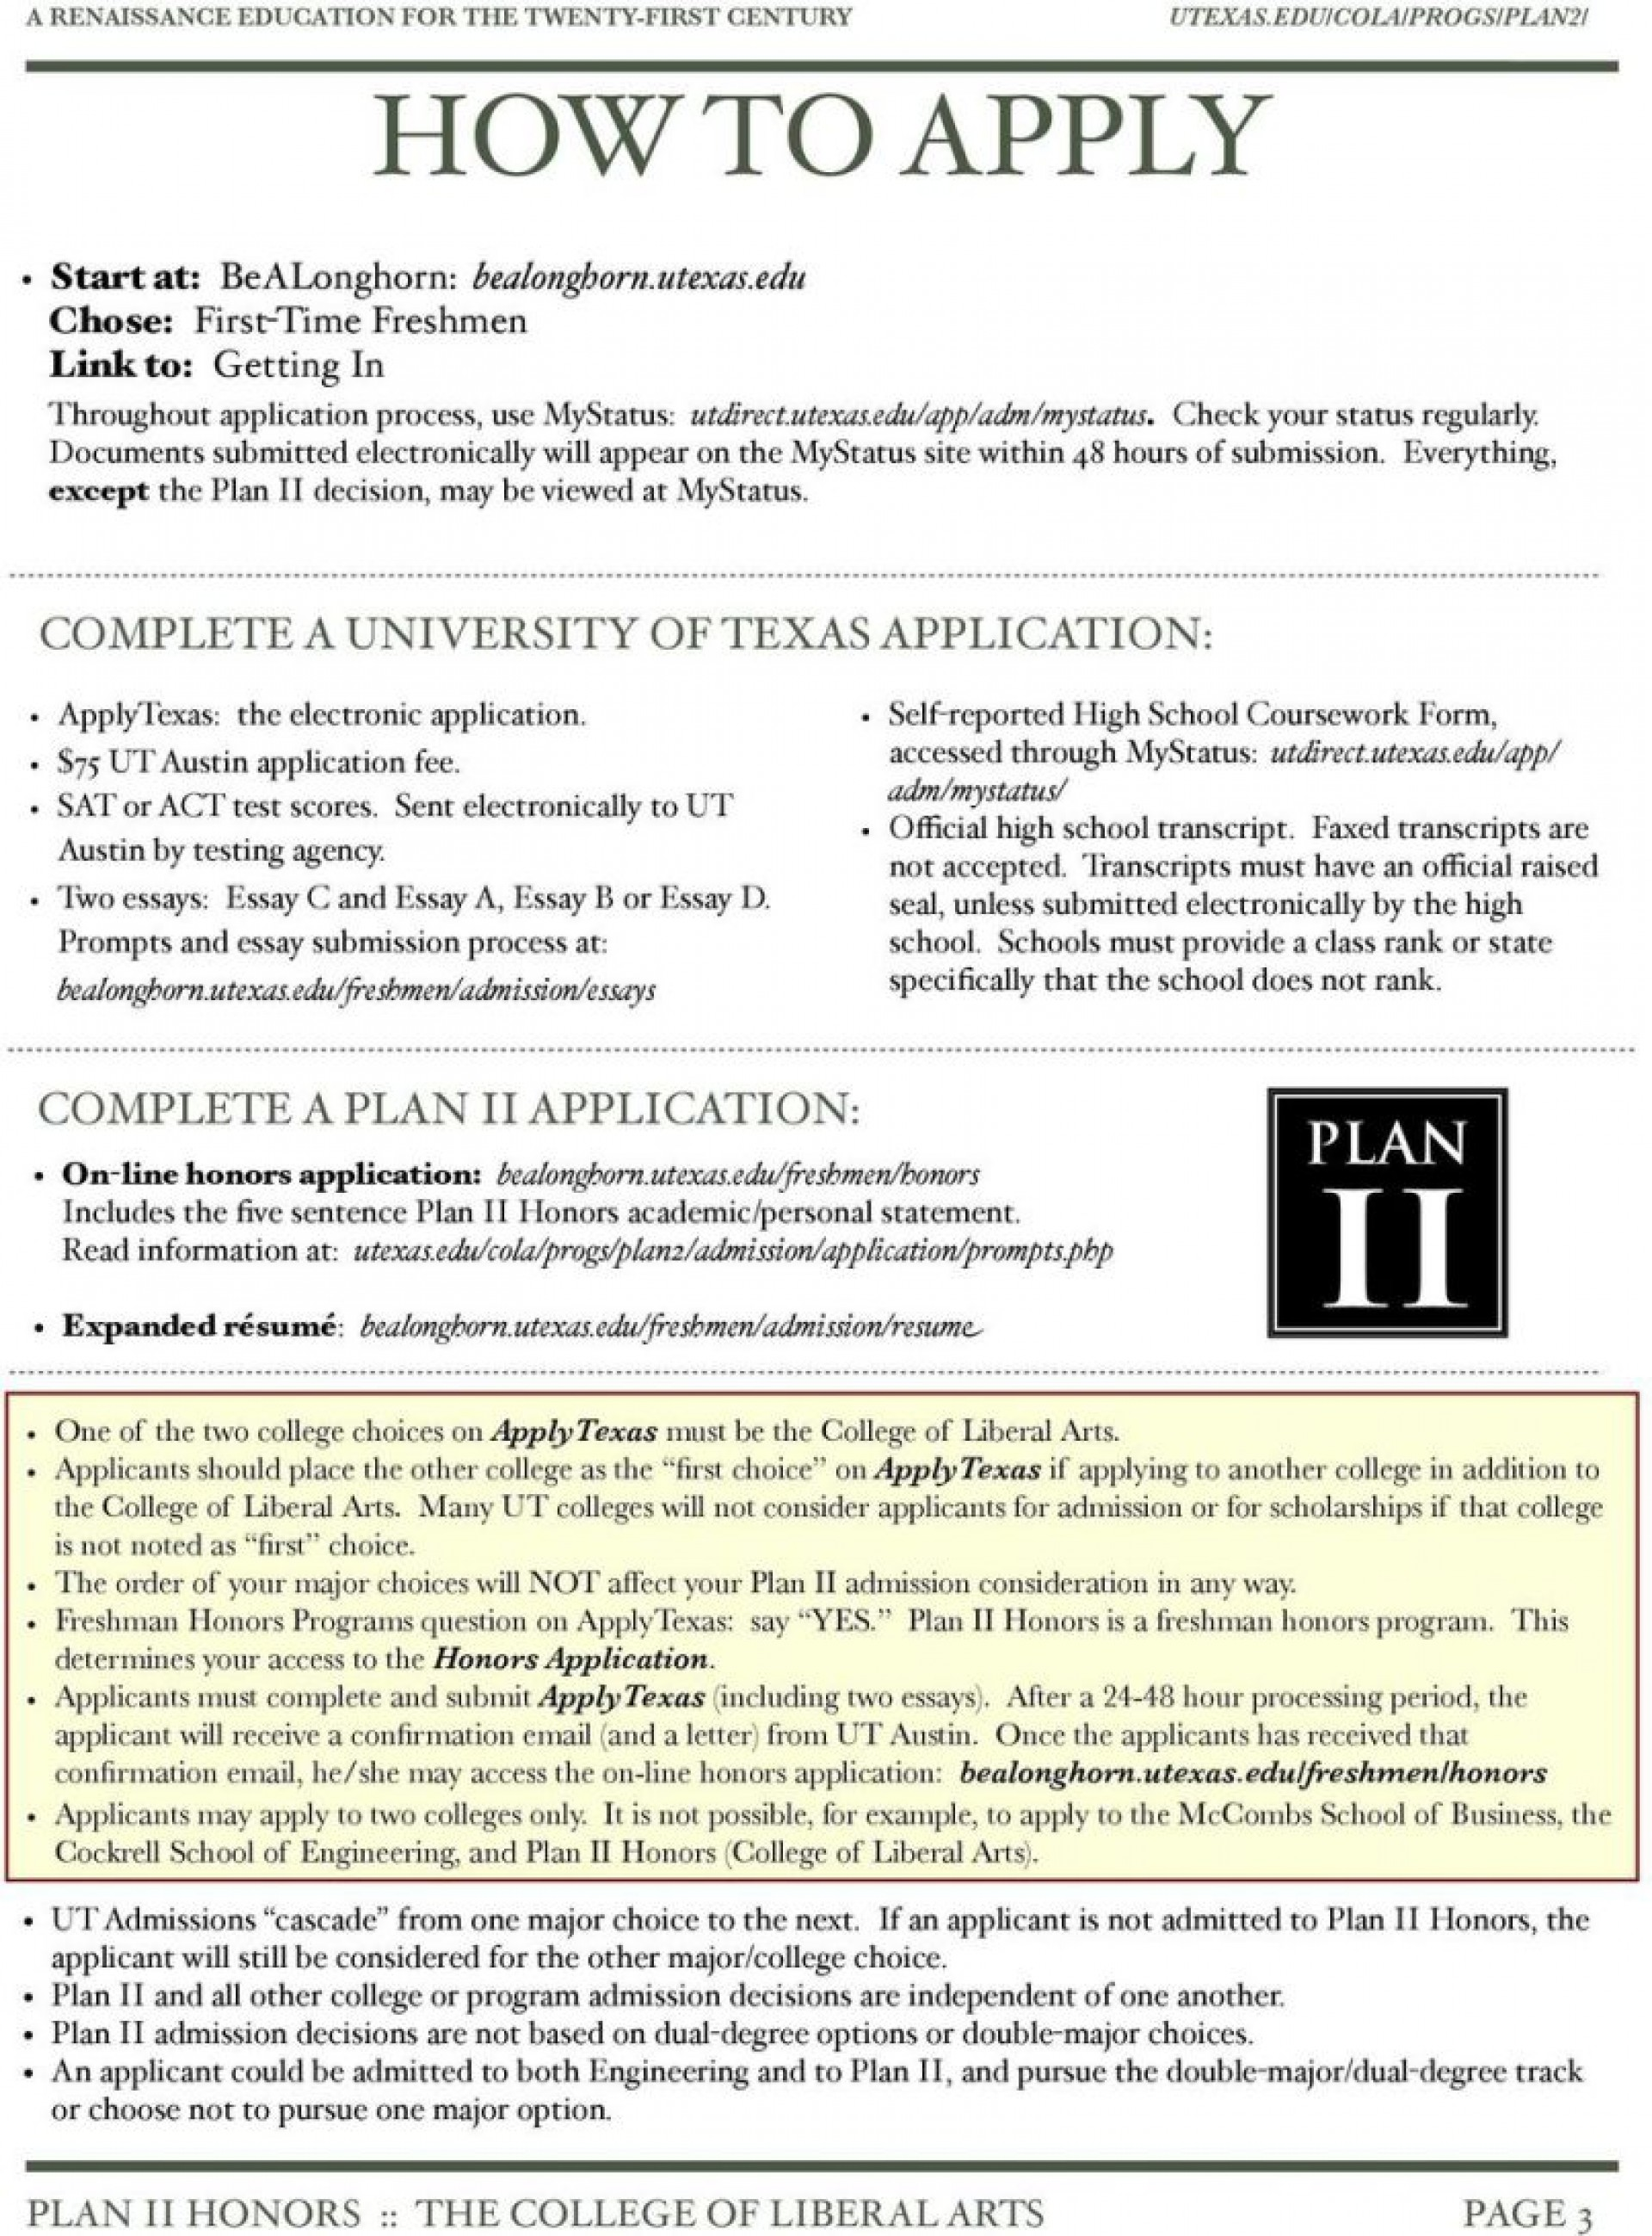 texas college application essay prompts 2018